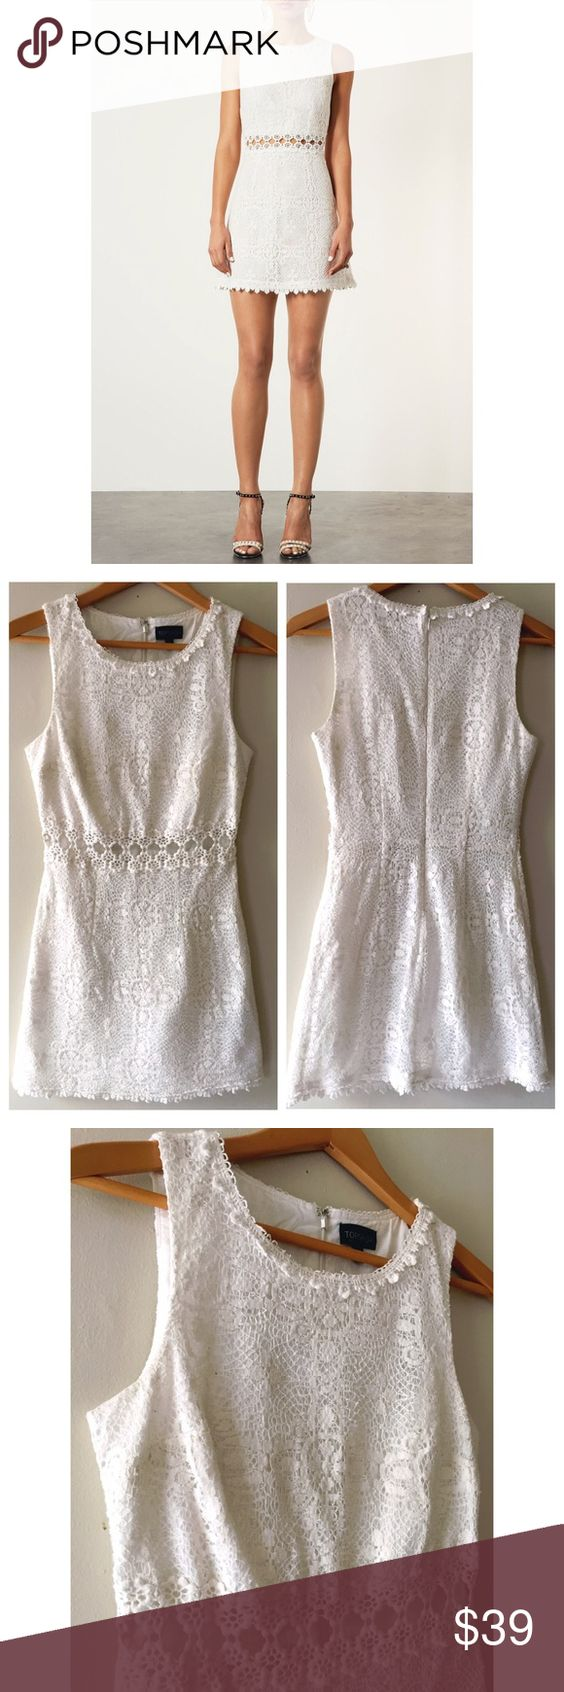 ➡️TOPSHOP 60s Lace Panel Shift Dress⬅️ Lace shift dress with crochet waist detail and concealed back zip 63% Cotton, 34% Polyamide, 3% Viscose. White/cream color according to their website. I love the open crochet waist. Wear it with chunky heels at night and gladiators for a day look. Topshop Dresses